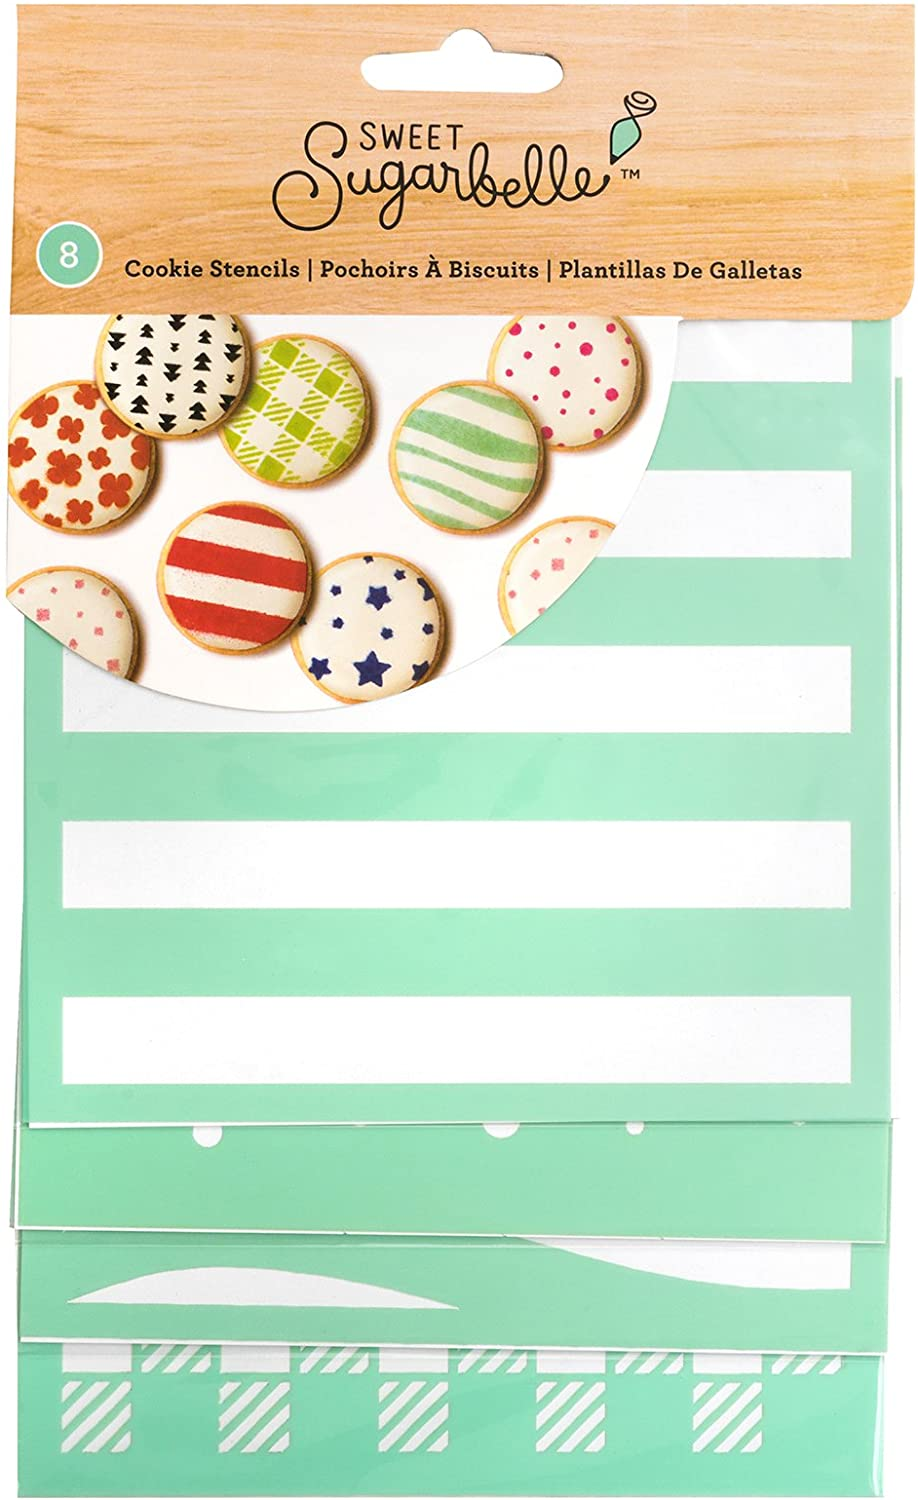 Sweet Sugarbelle 8 Piece 5 x 5 Inch Square Stencil Cookie Supplies